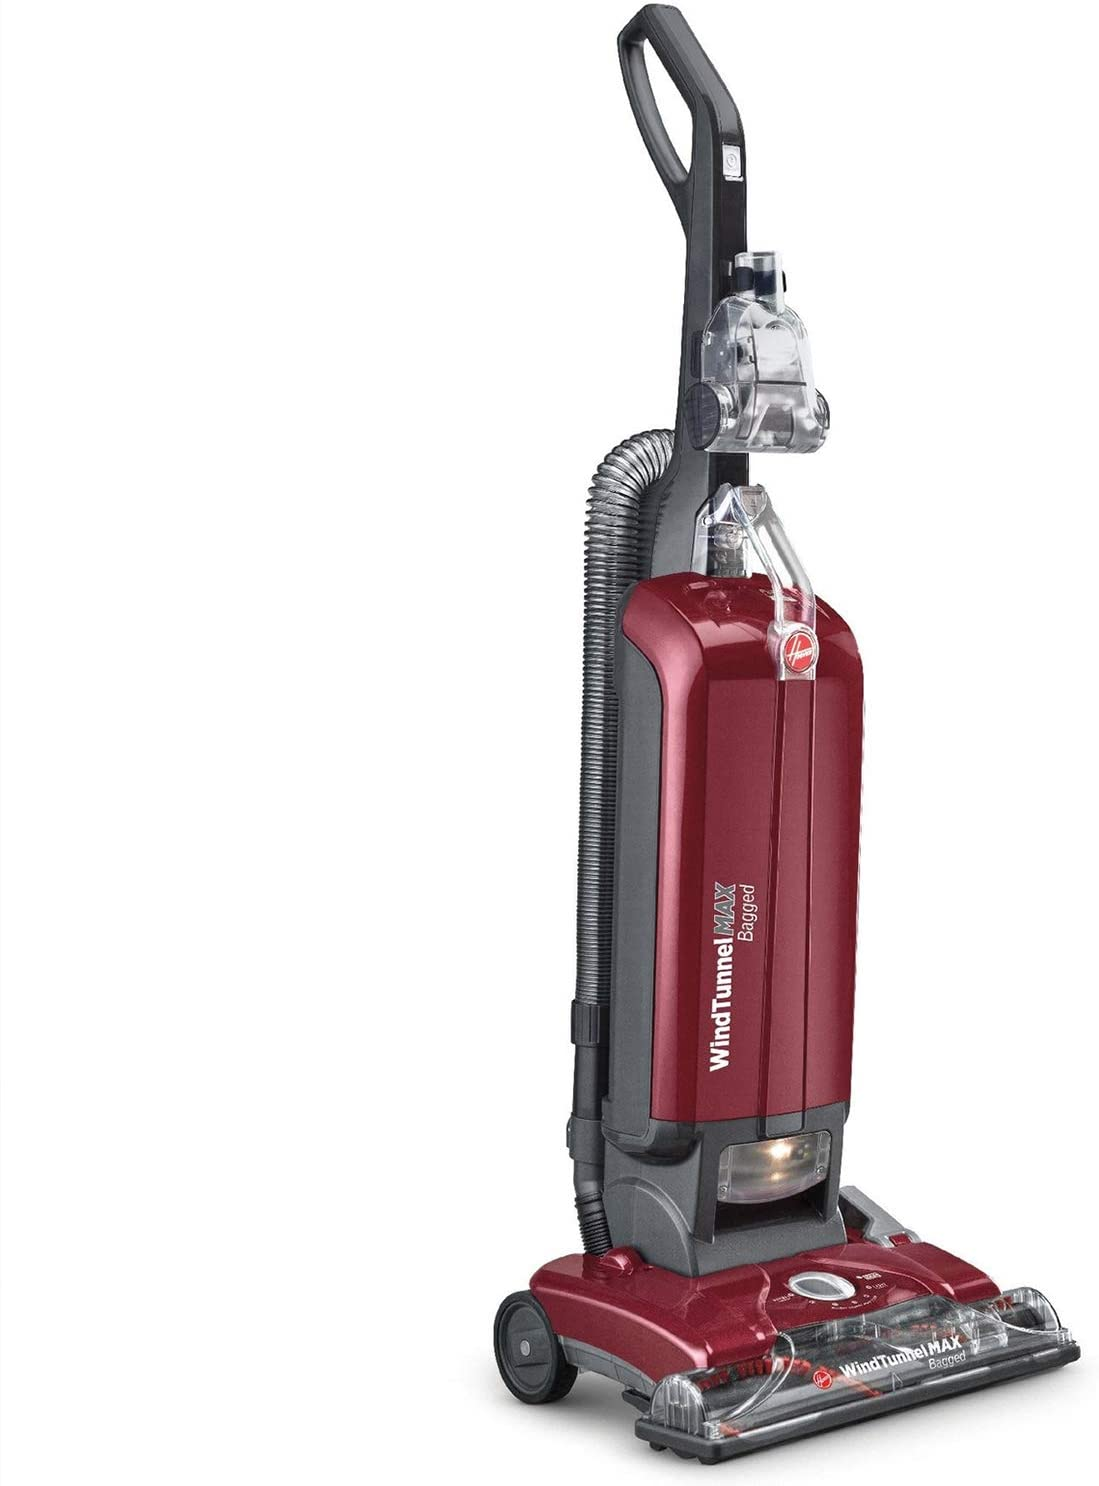 The Best 5 HEPA Vacuums For Allergies 35